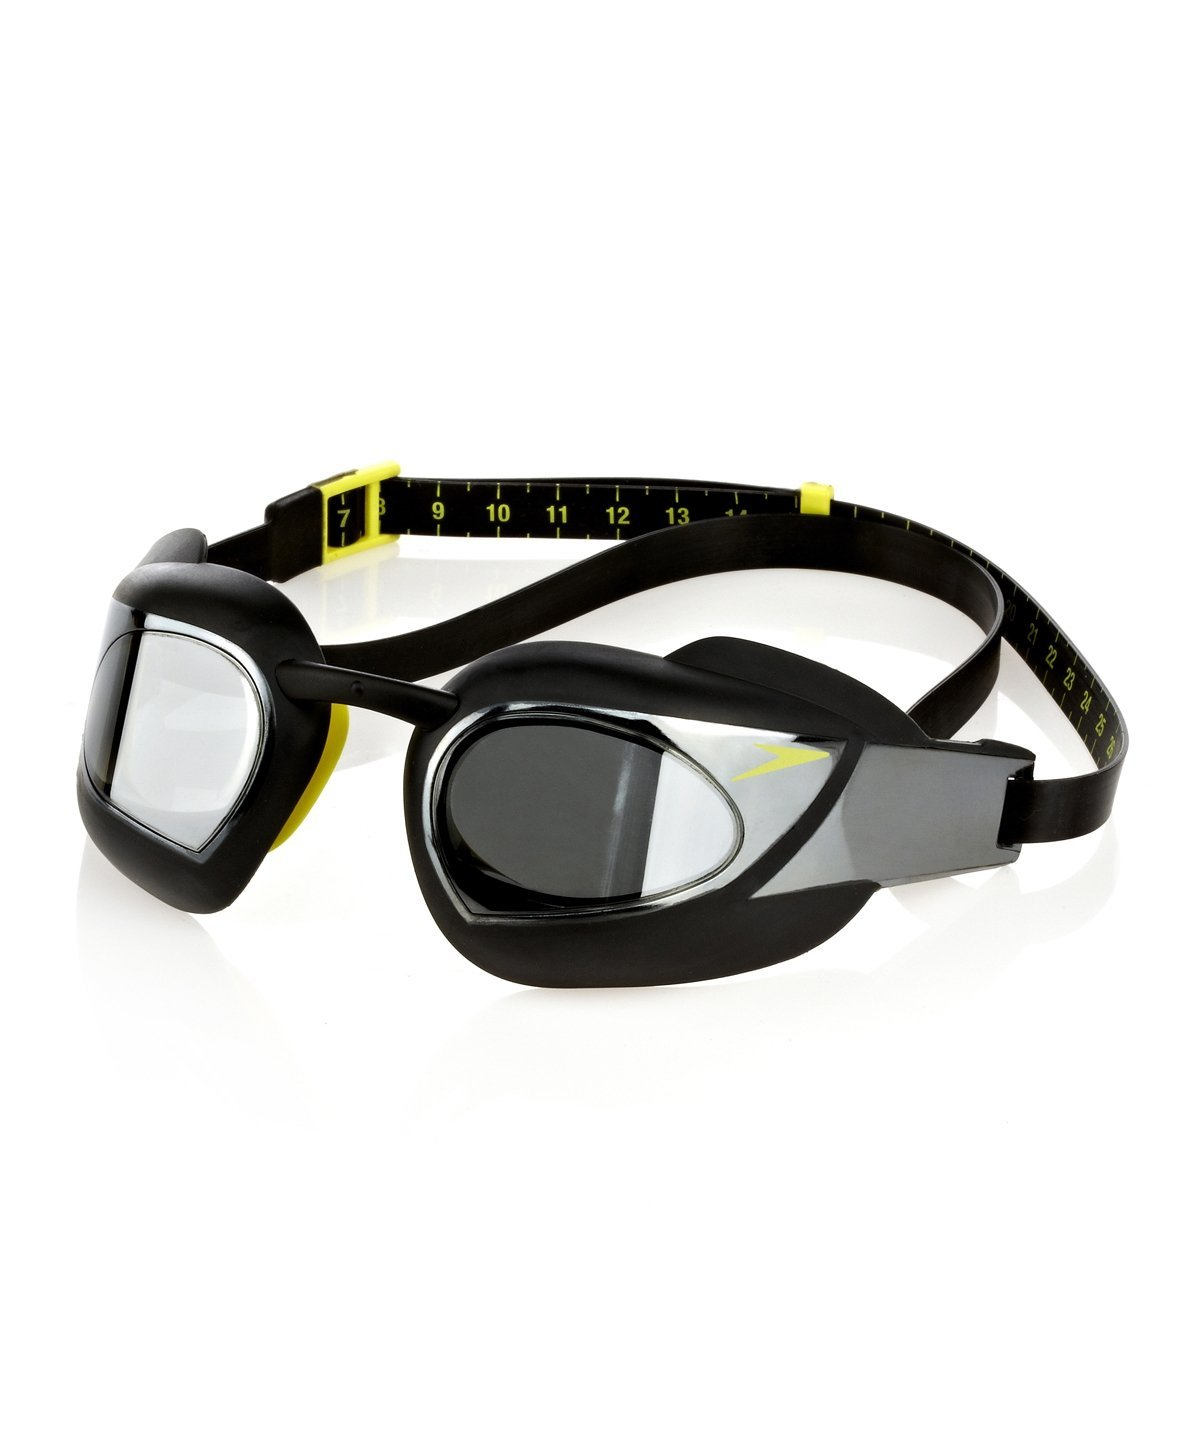 Miedo a morir lámpara espina  Buy Speedo Fastskin Elite Mirror Goggle - Red White and Blue in Cheap Price  on Alibaba.com